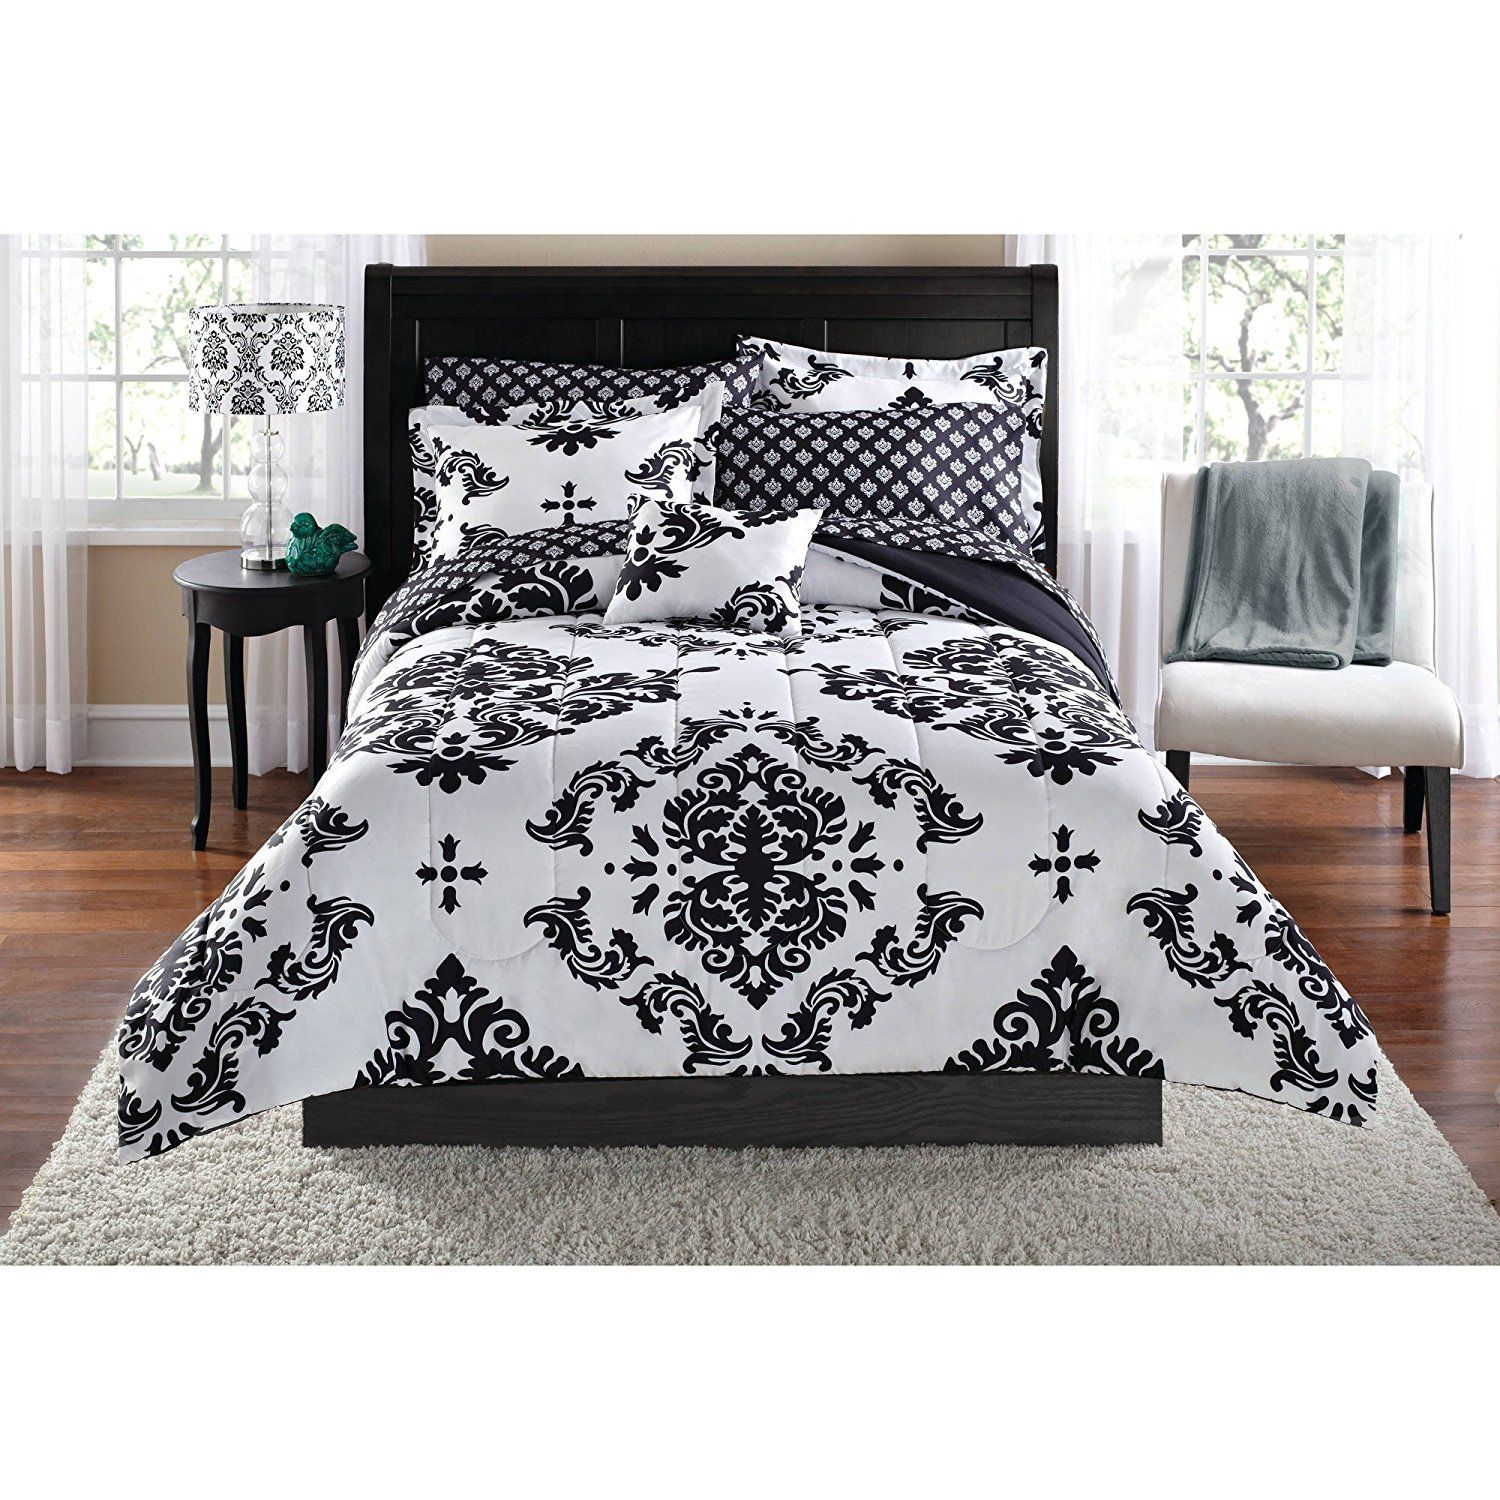 Mainstays Classic Noir Bed Bag Bedding Set TWIN TWIN XL